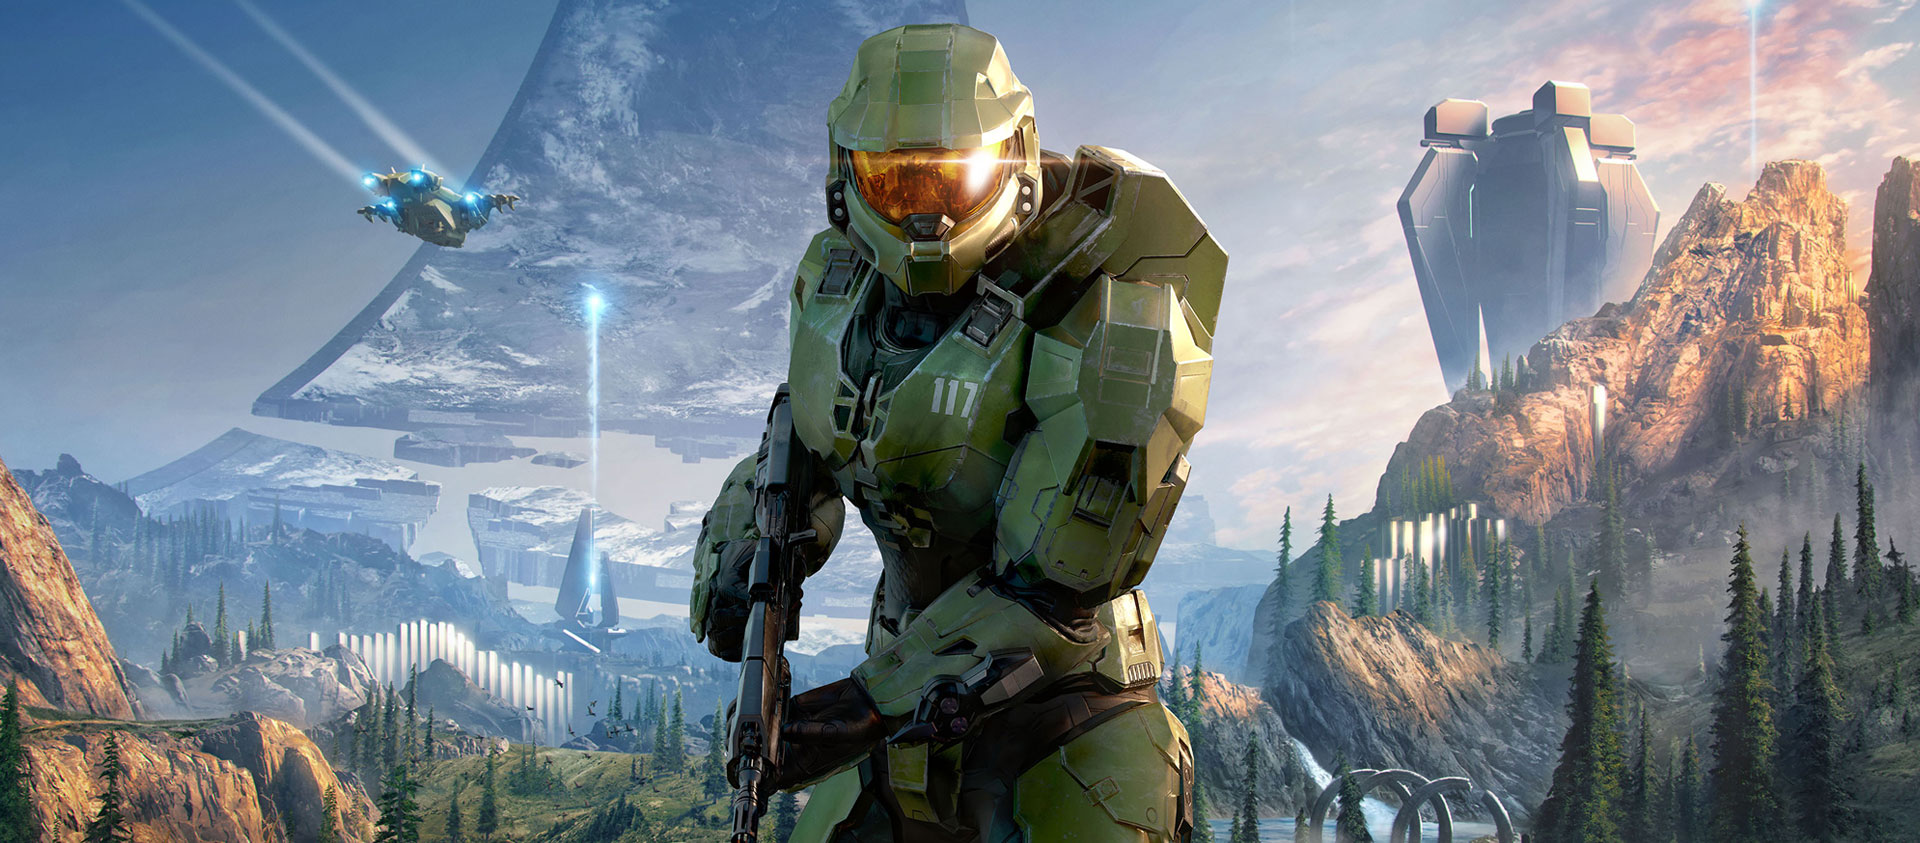 Master Chief stands at the ready, a Halo ring extends into the sky in the distance.